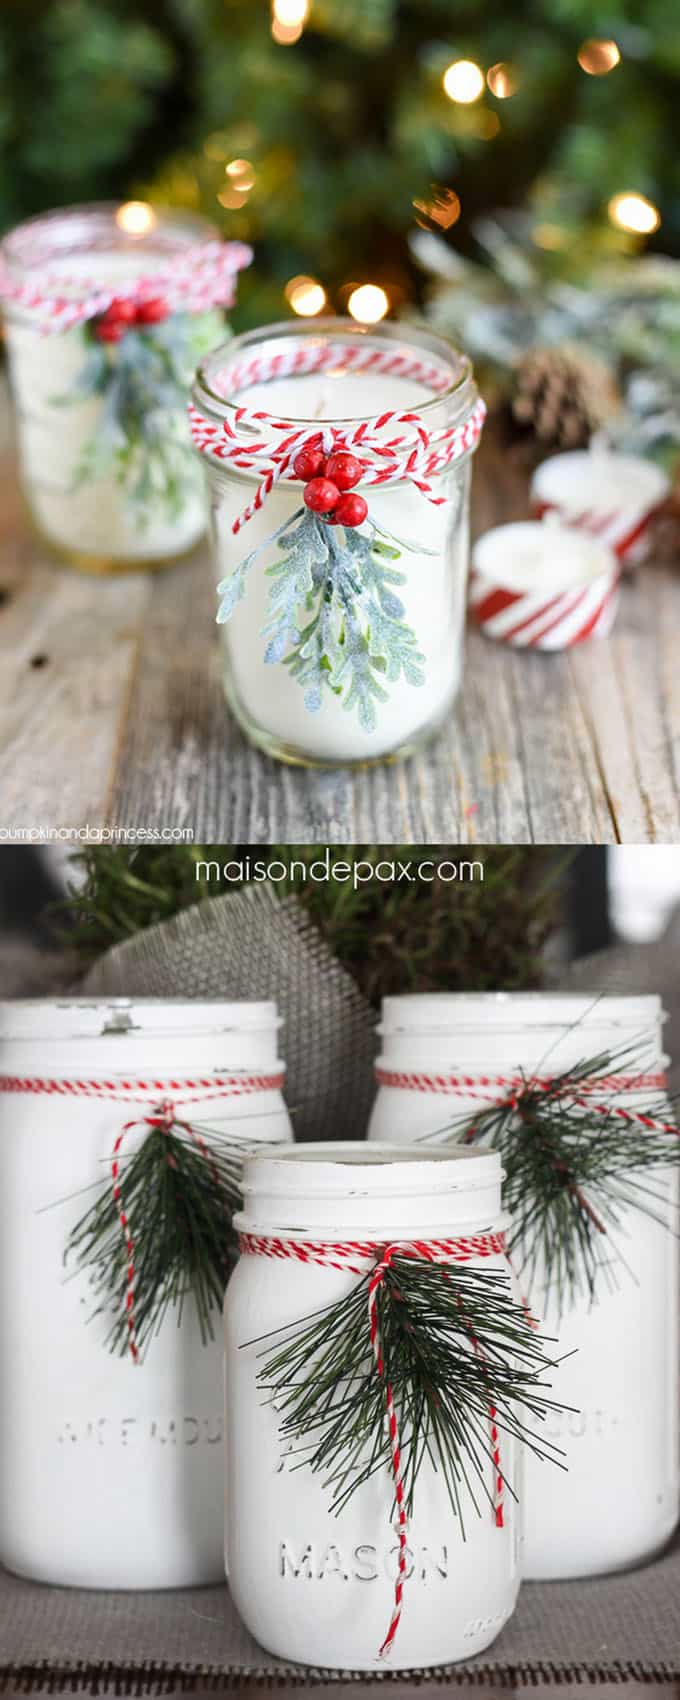 27 gorgeous easy diy thanksgiving and christmas table decorations centerpieces most can be - Diy Christmas Table Decorations